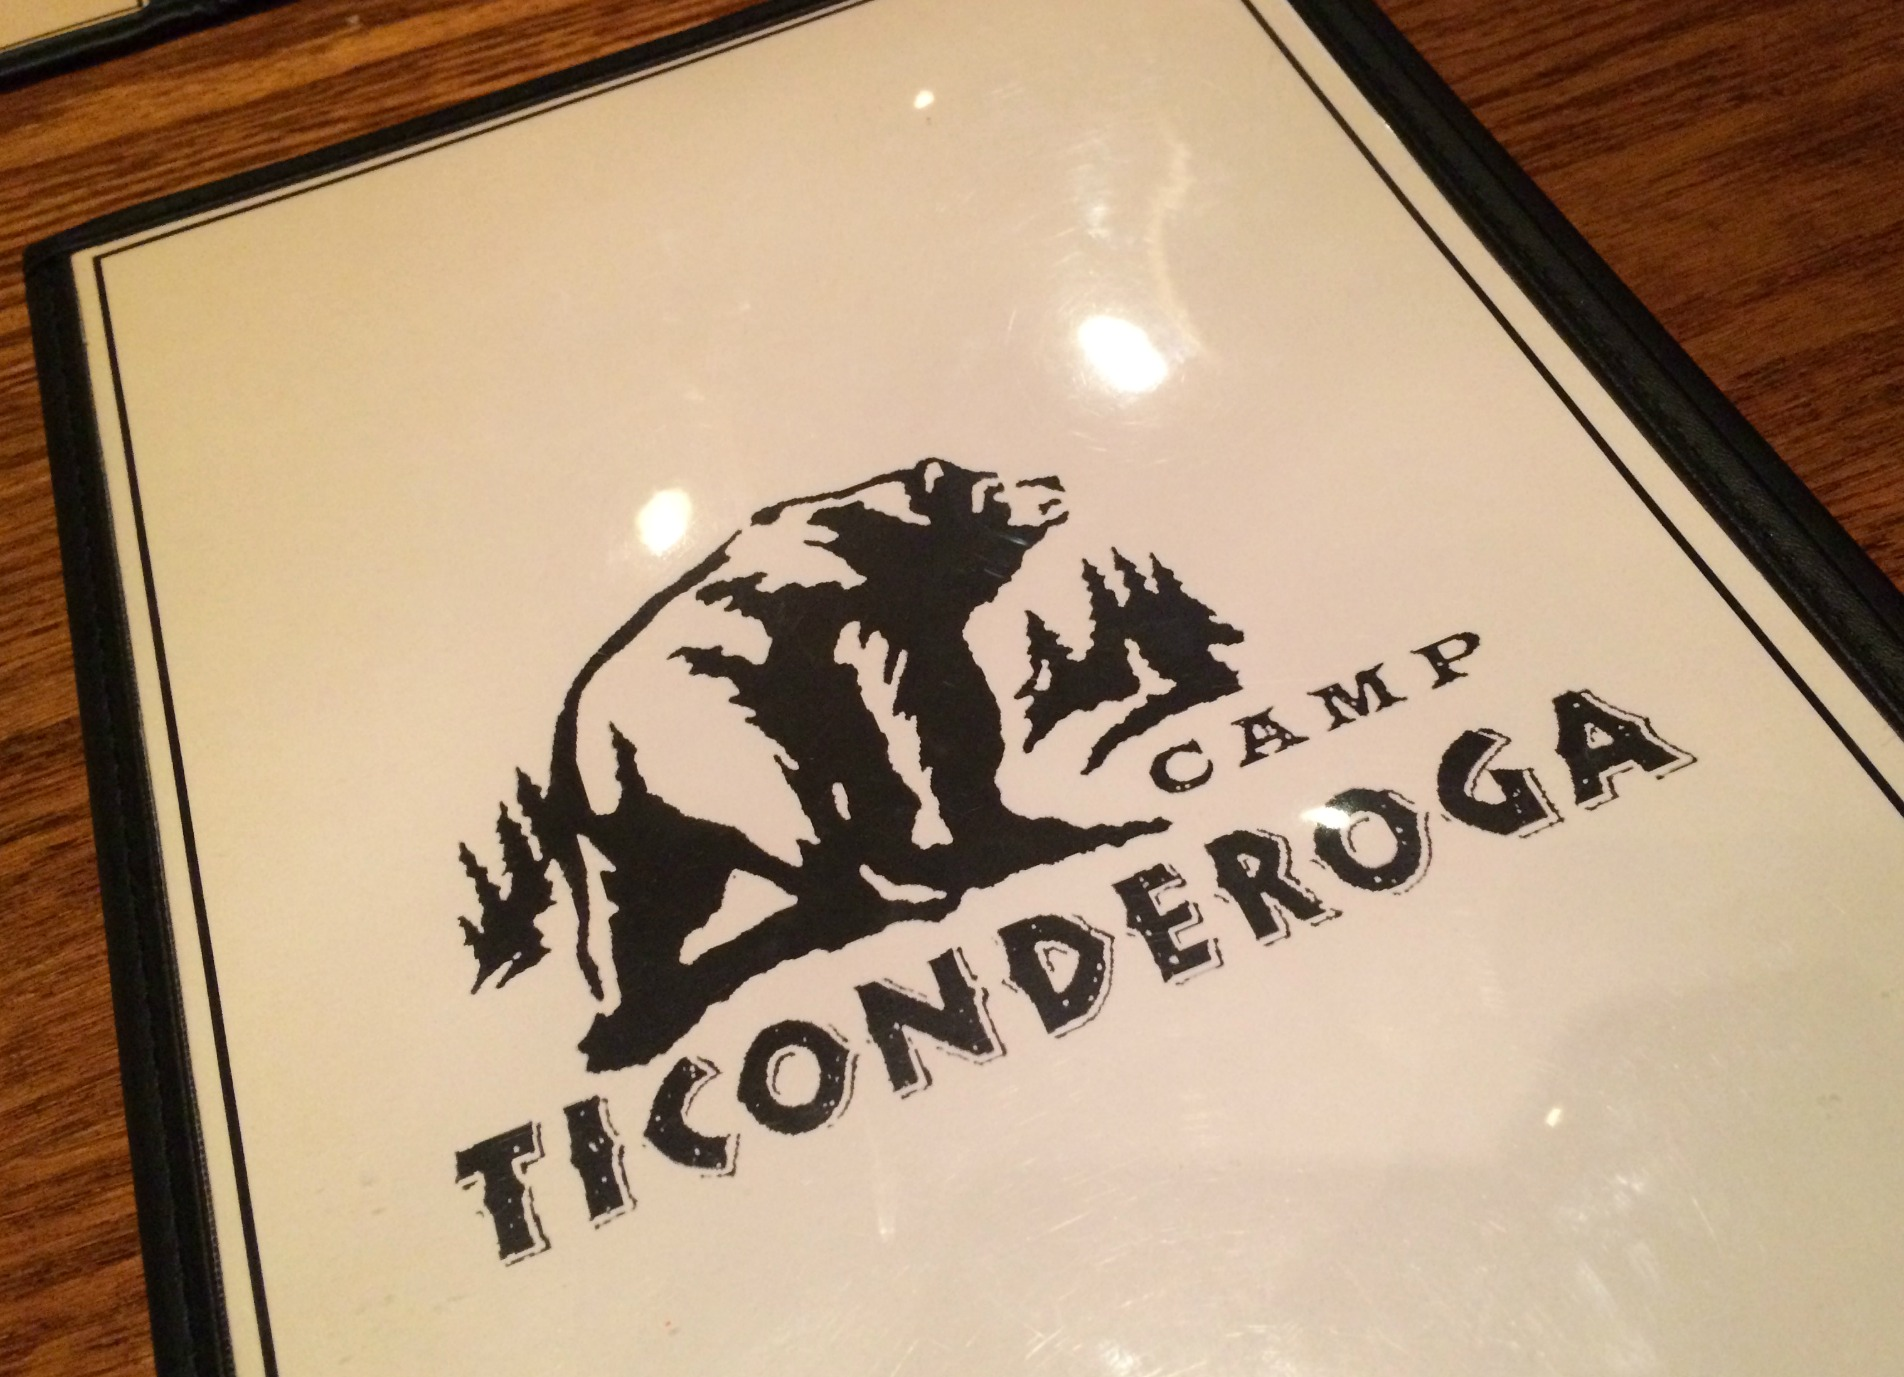 Camp Ticonderoga menu